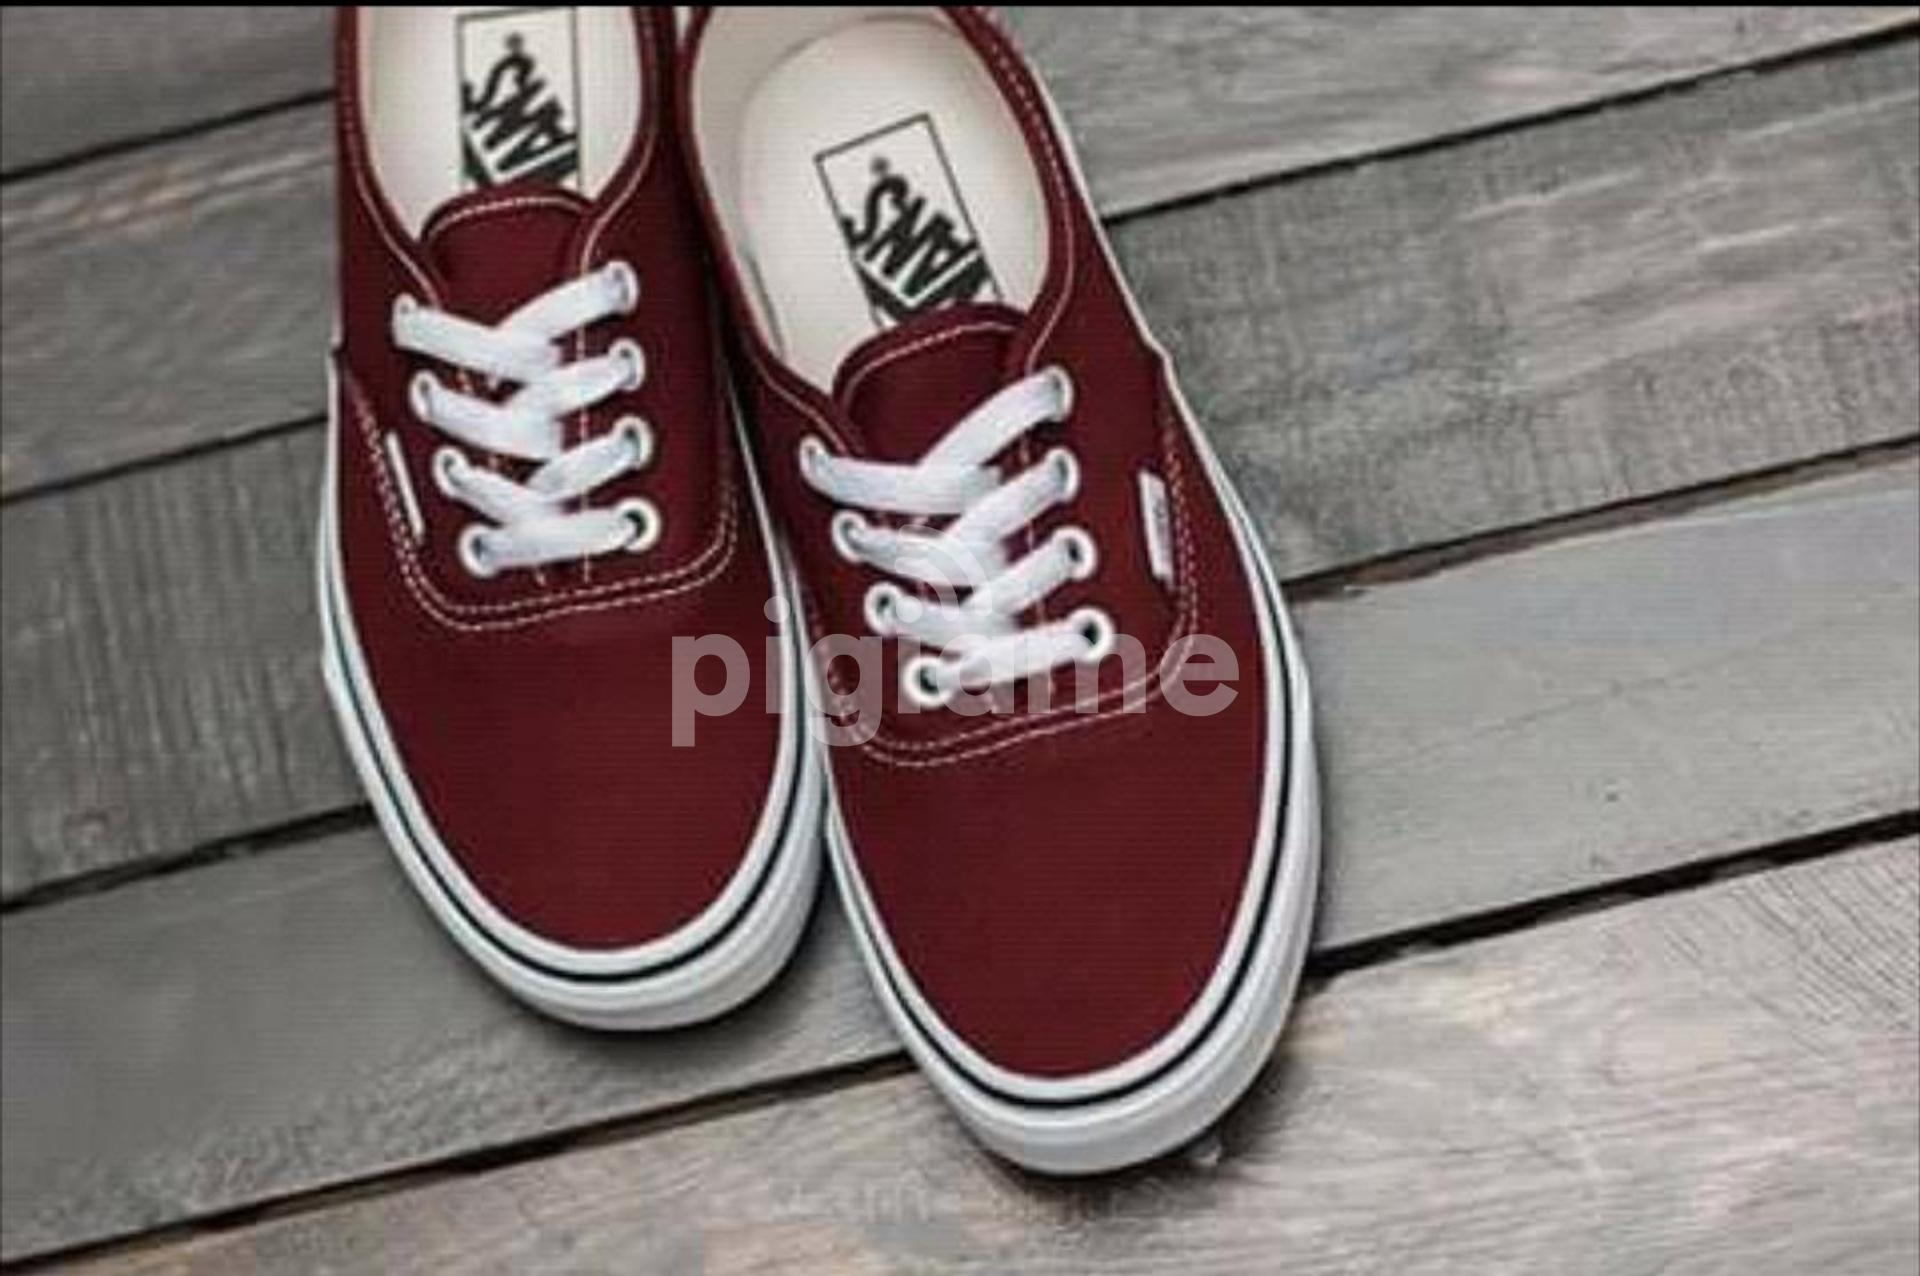 Vans Off The Wall Shoes in Nairobi